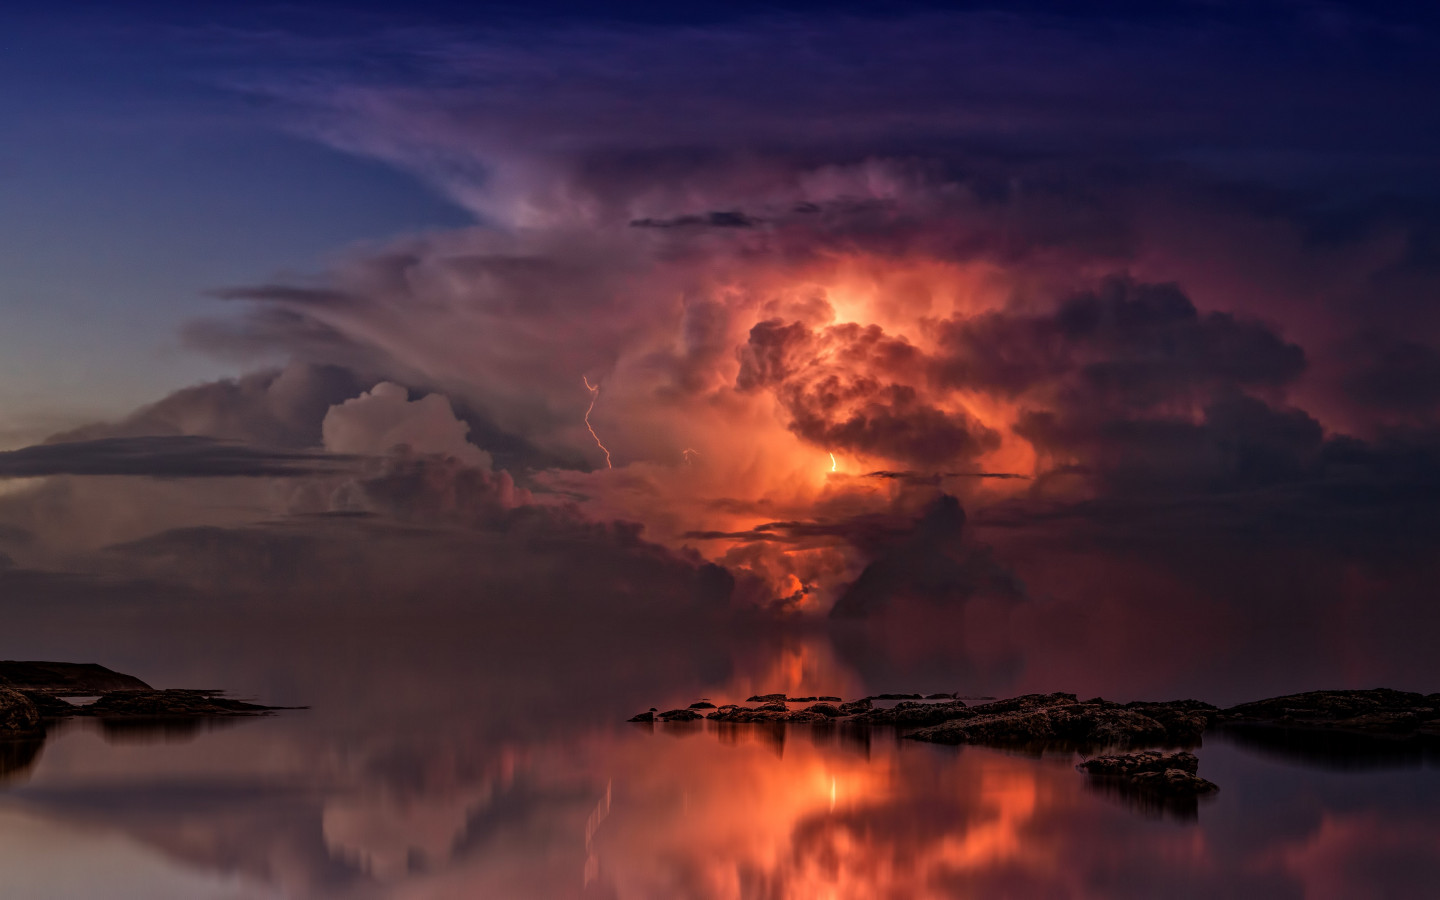 Lightning and thunderstorm in the sky wallpaper 1440x900